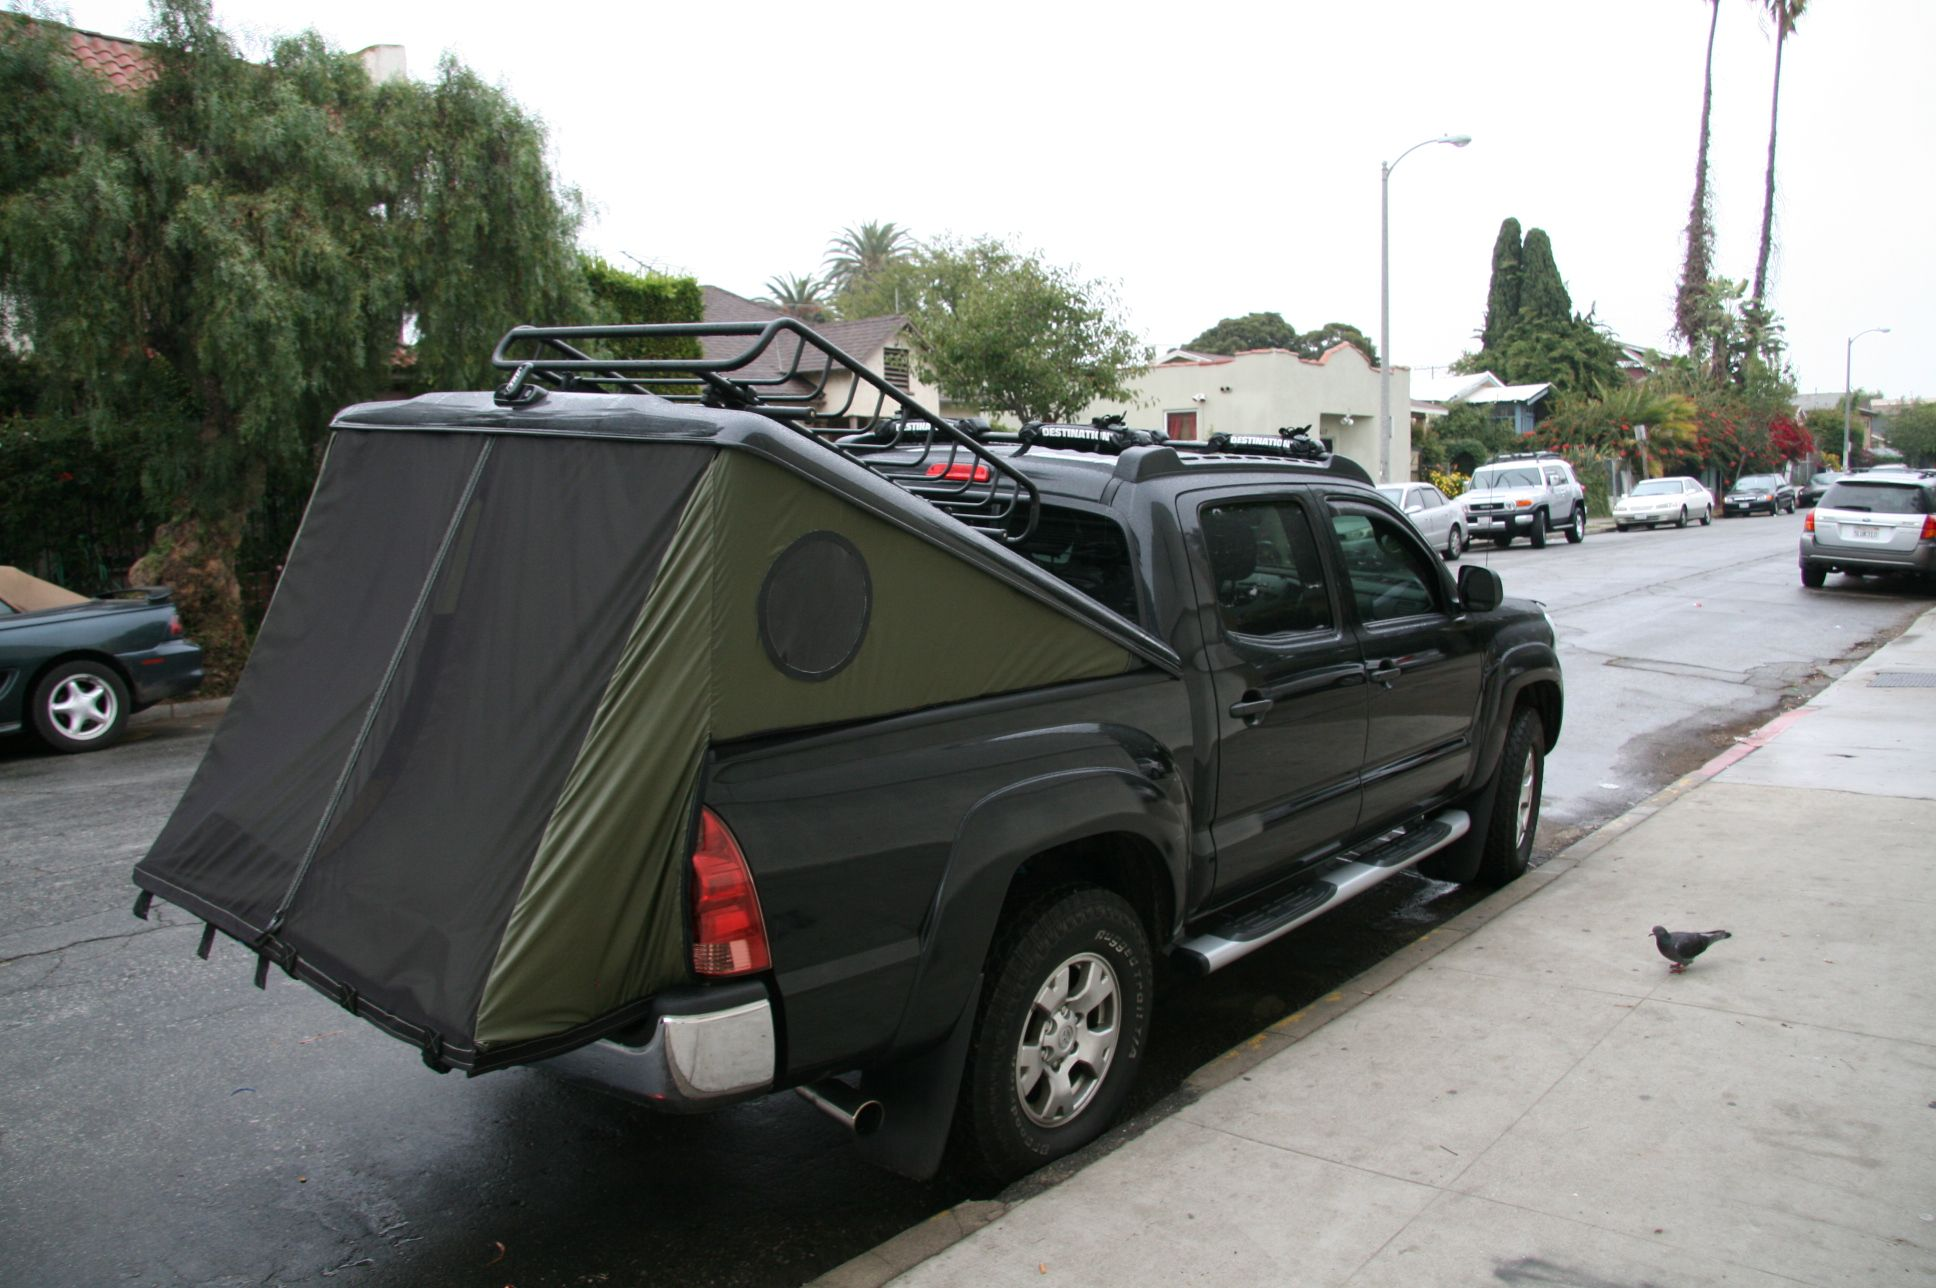 tonneau tent & tonneau tent | Camping | Pinterest | Tents Camping and Truck camping